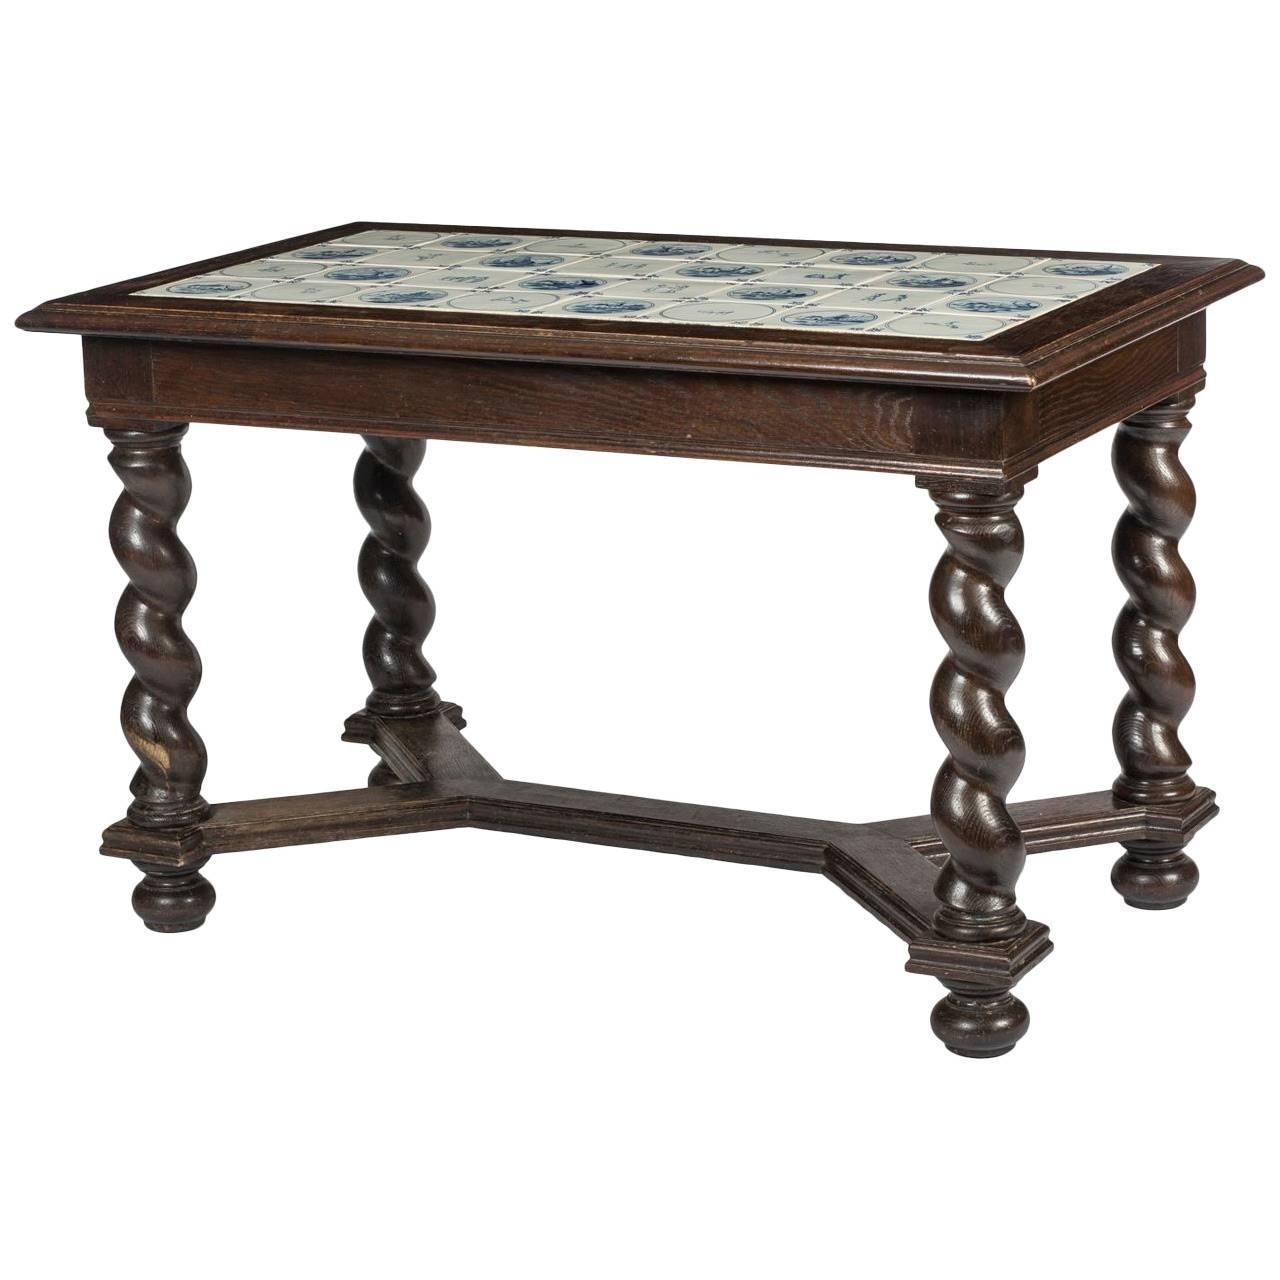 Baroque Style Delft Tile Top Table For Sale At 1stdibs